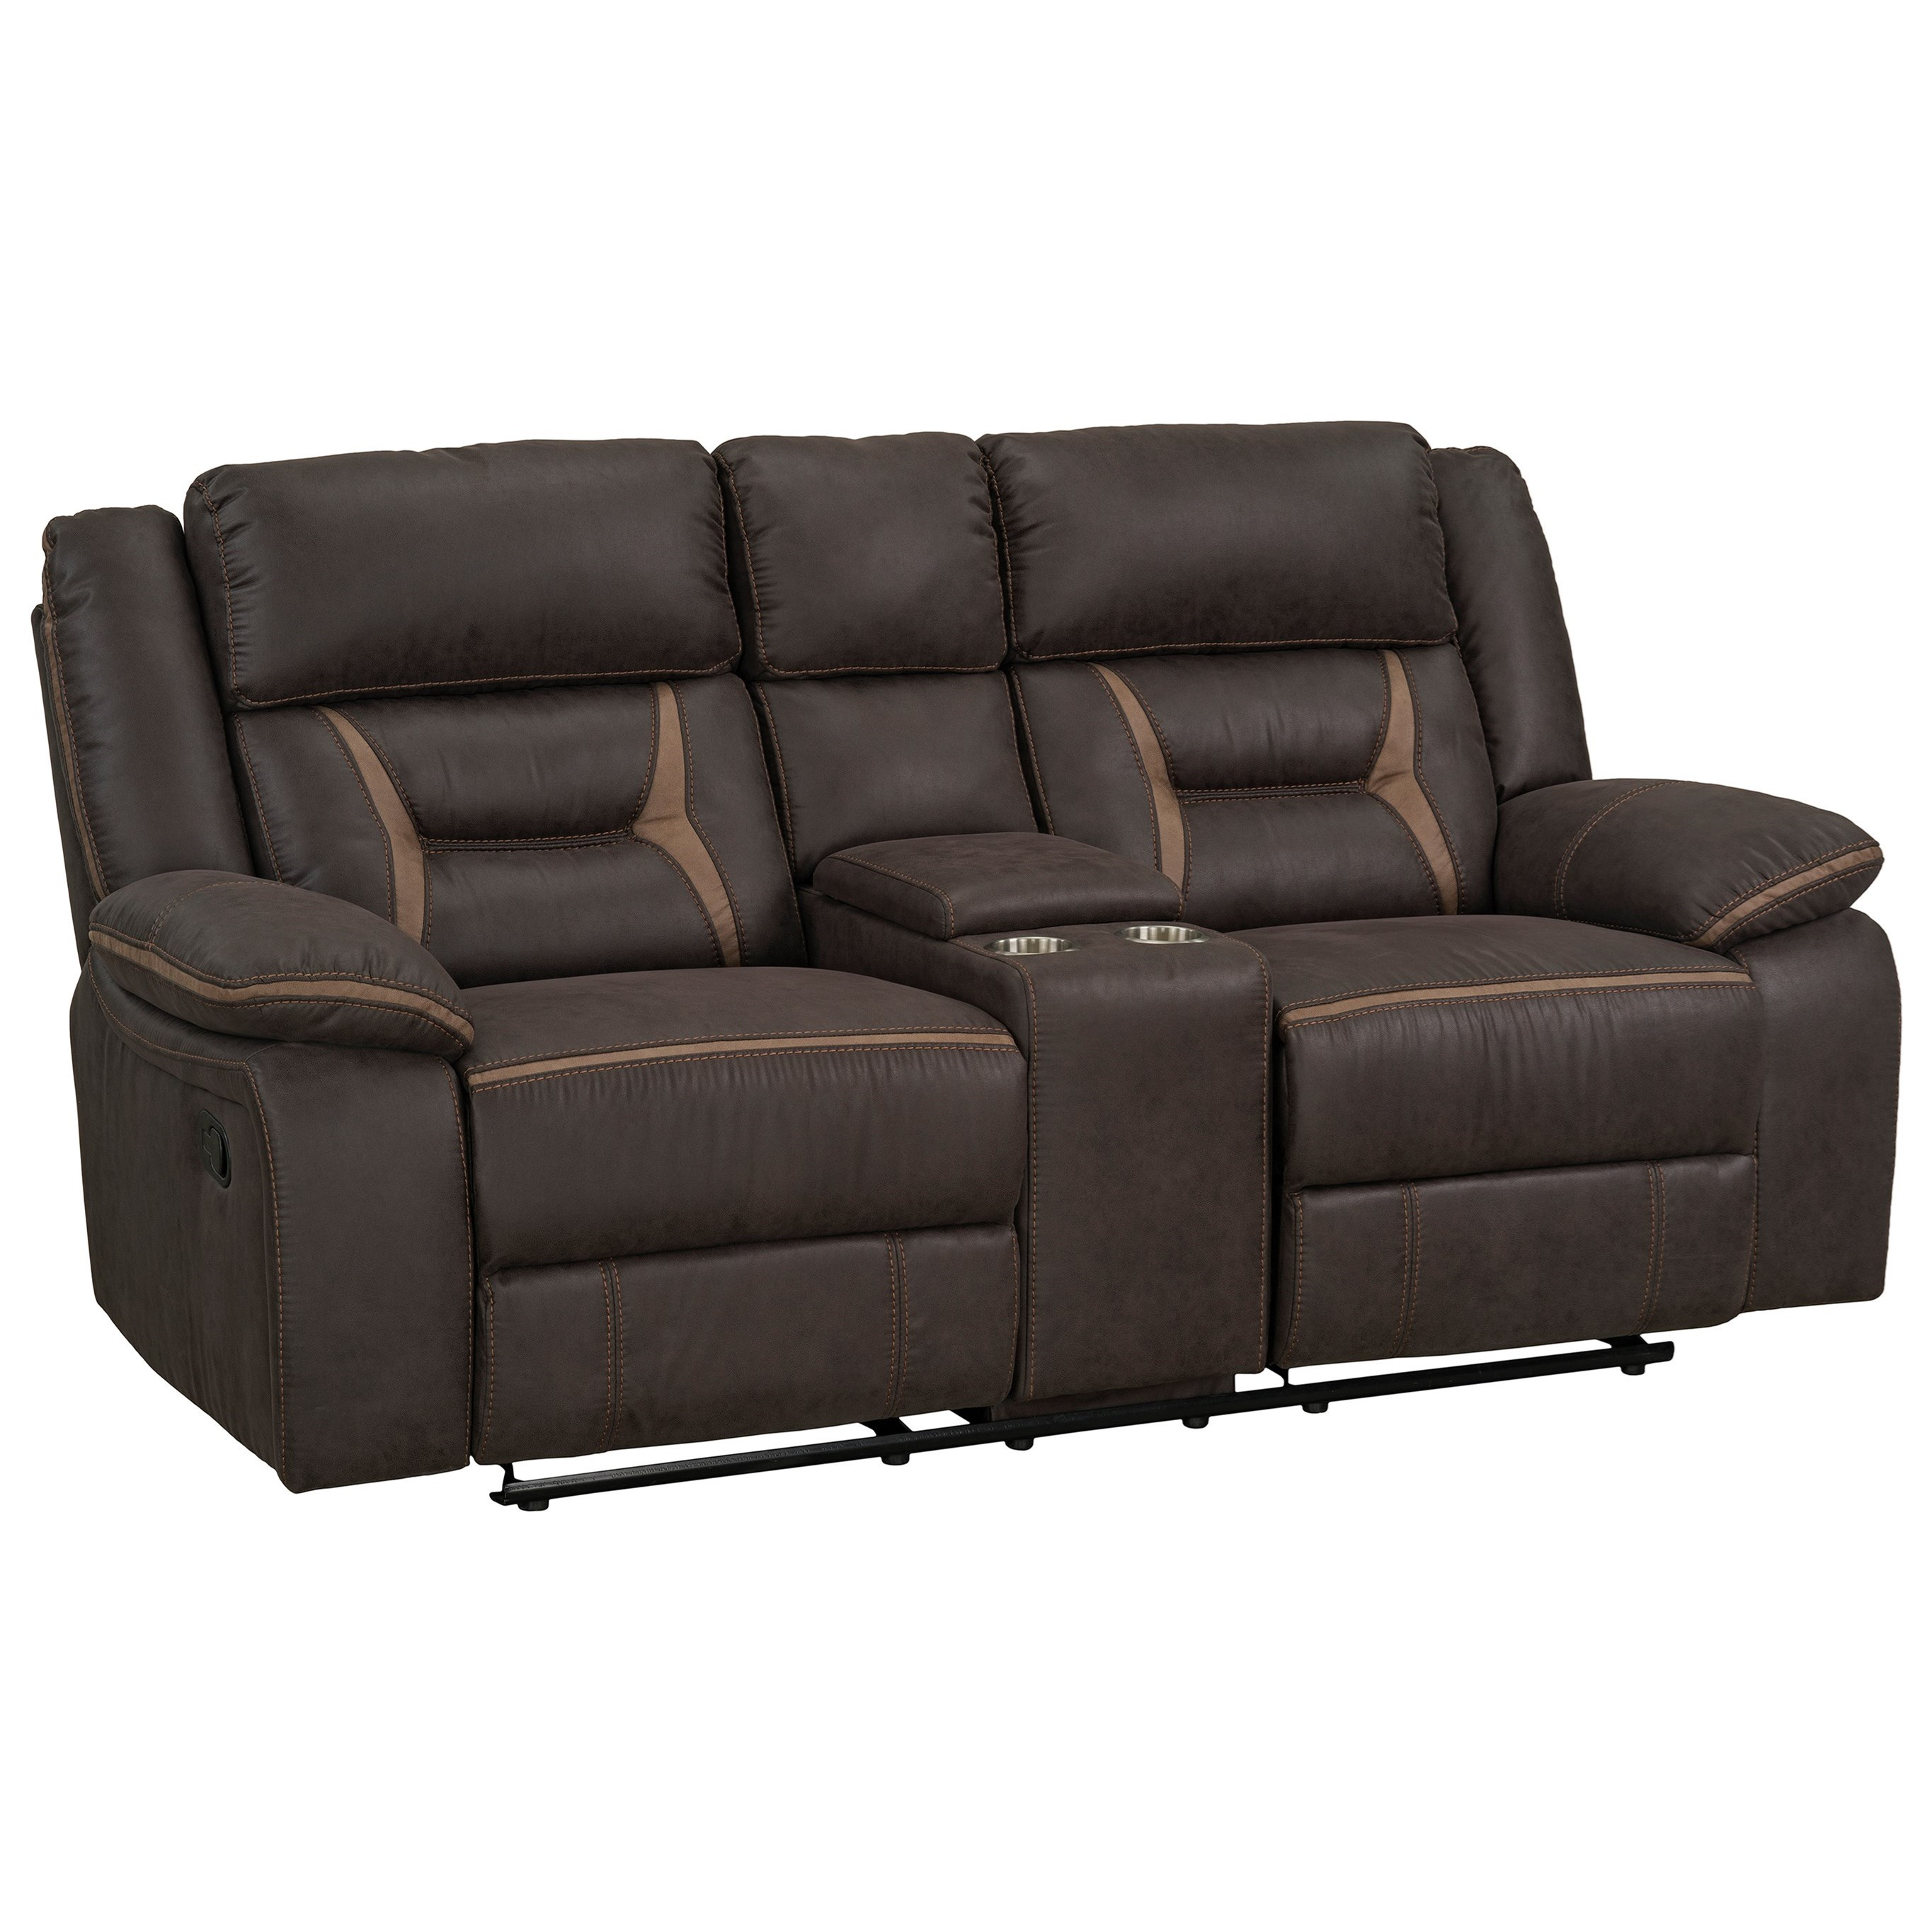 Manual Glider Reclining Loveseat